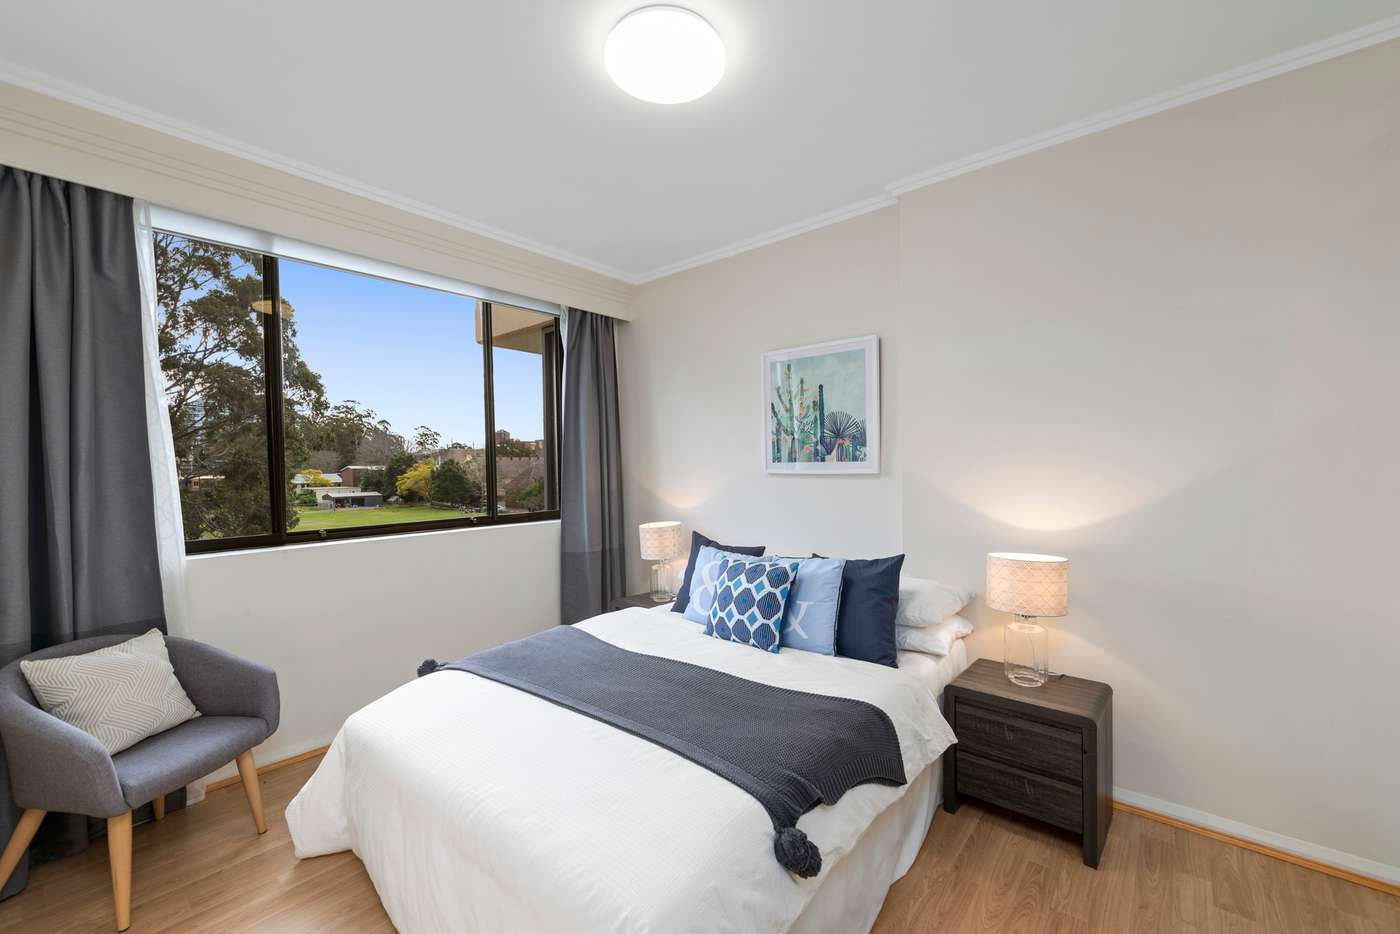 Fifth view of Homely apartment listing, 141/8-12 Thomas Street, Waitara NSW 2077